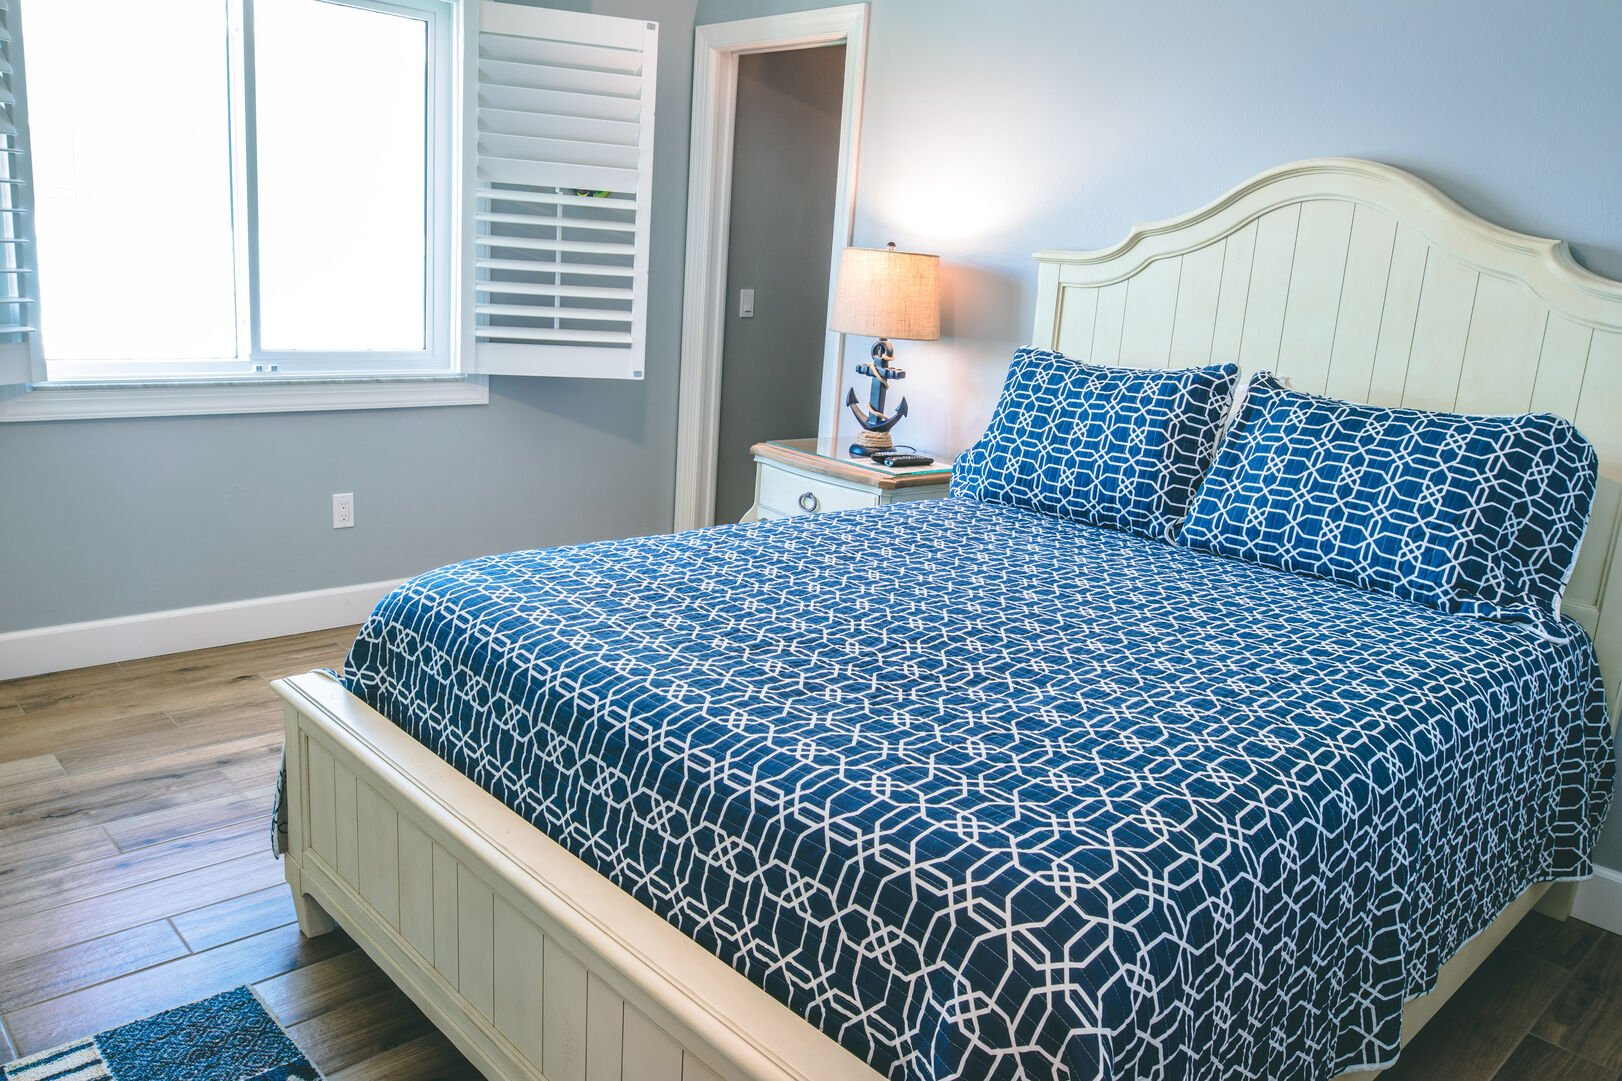 Bedroom with blue covers